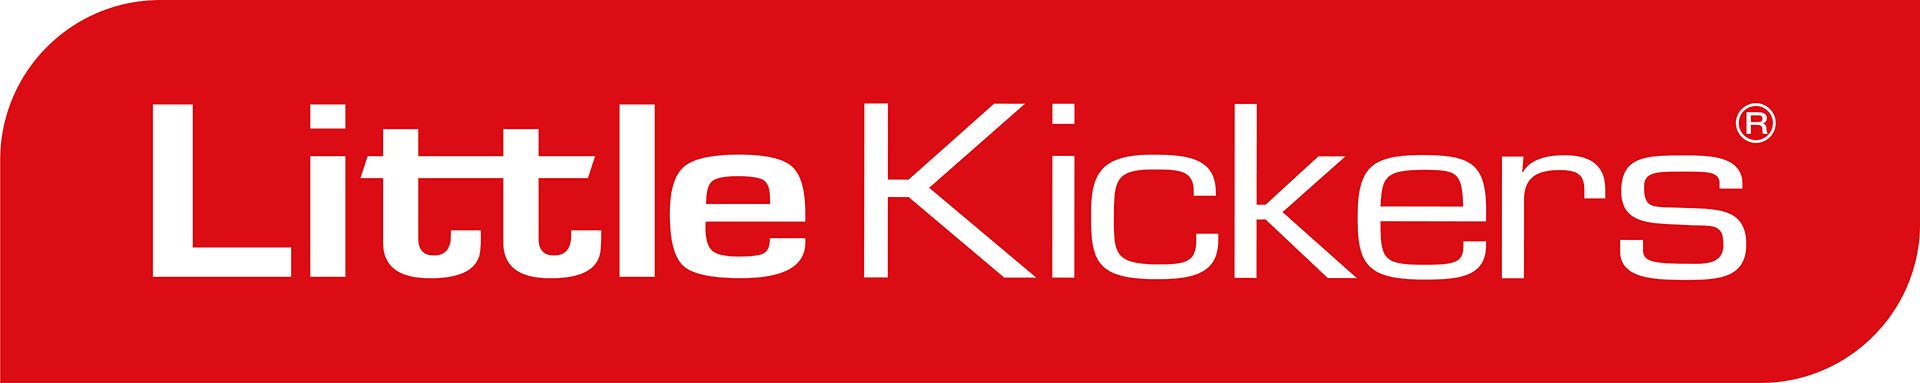 Little Kickers Football (Ages 18m - 7 Years)'s logo